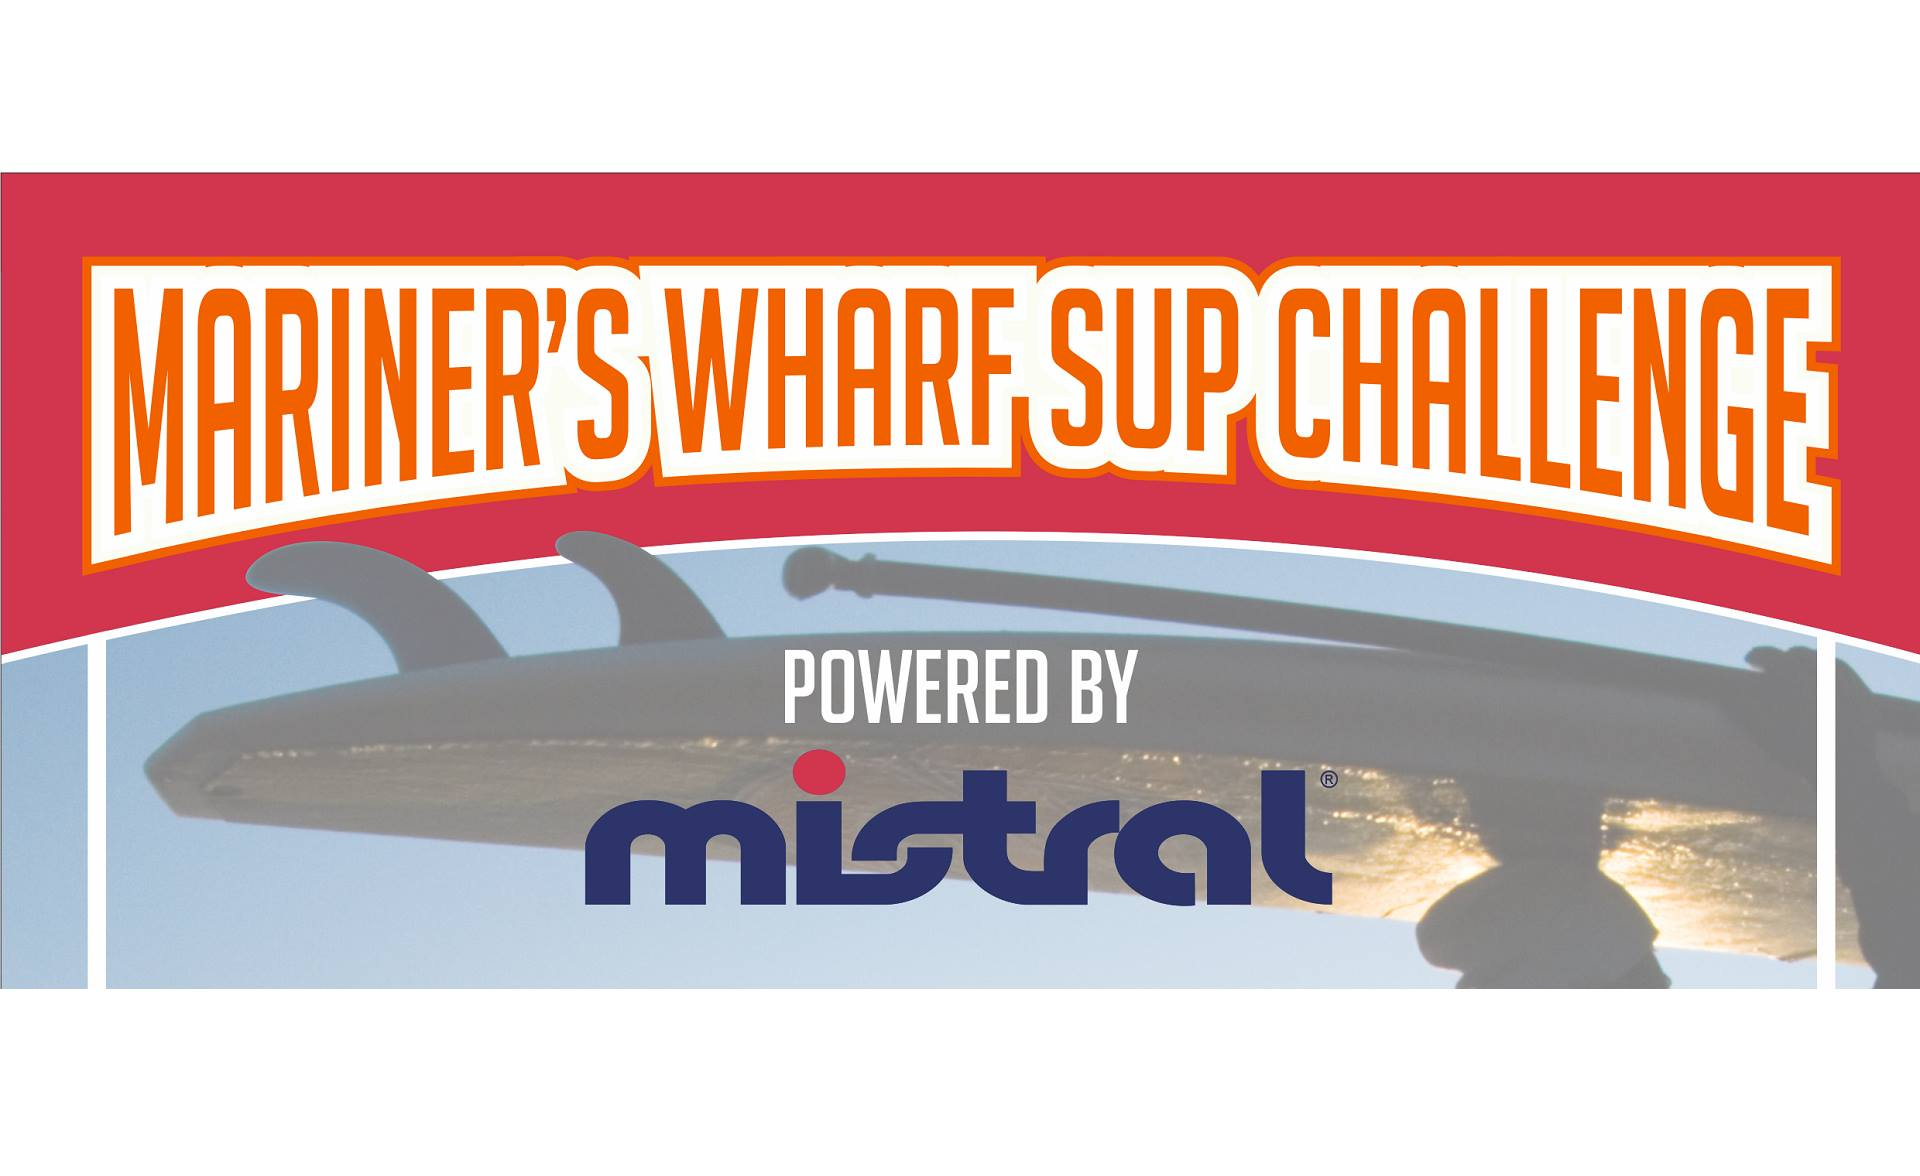 Mariner's Wharf SUP Challenge – 6 August